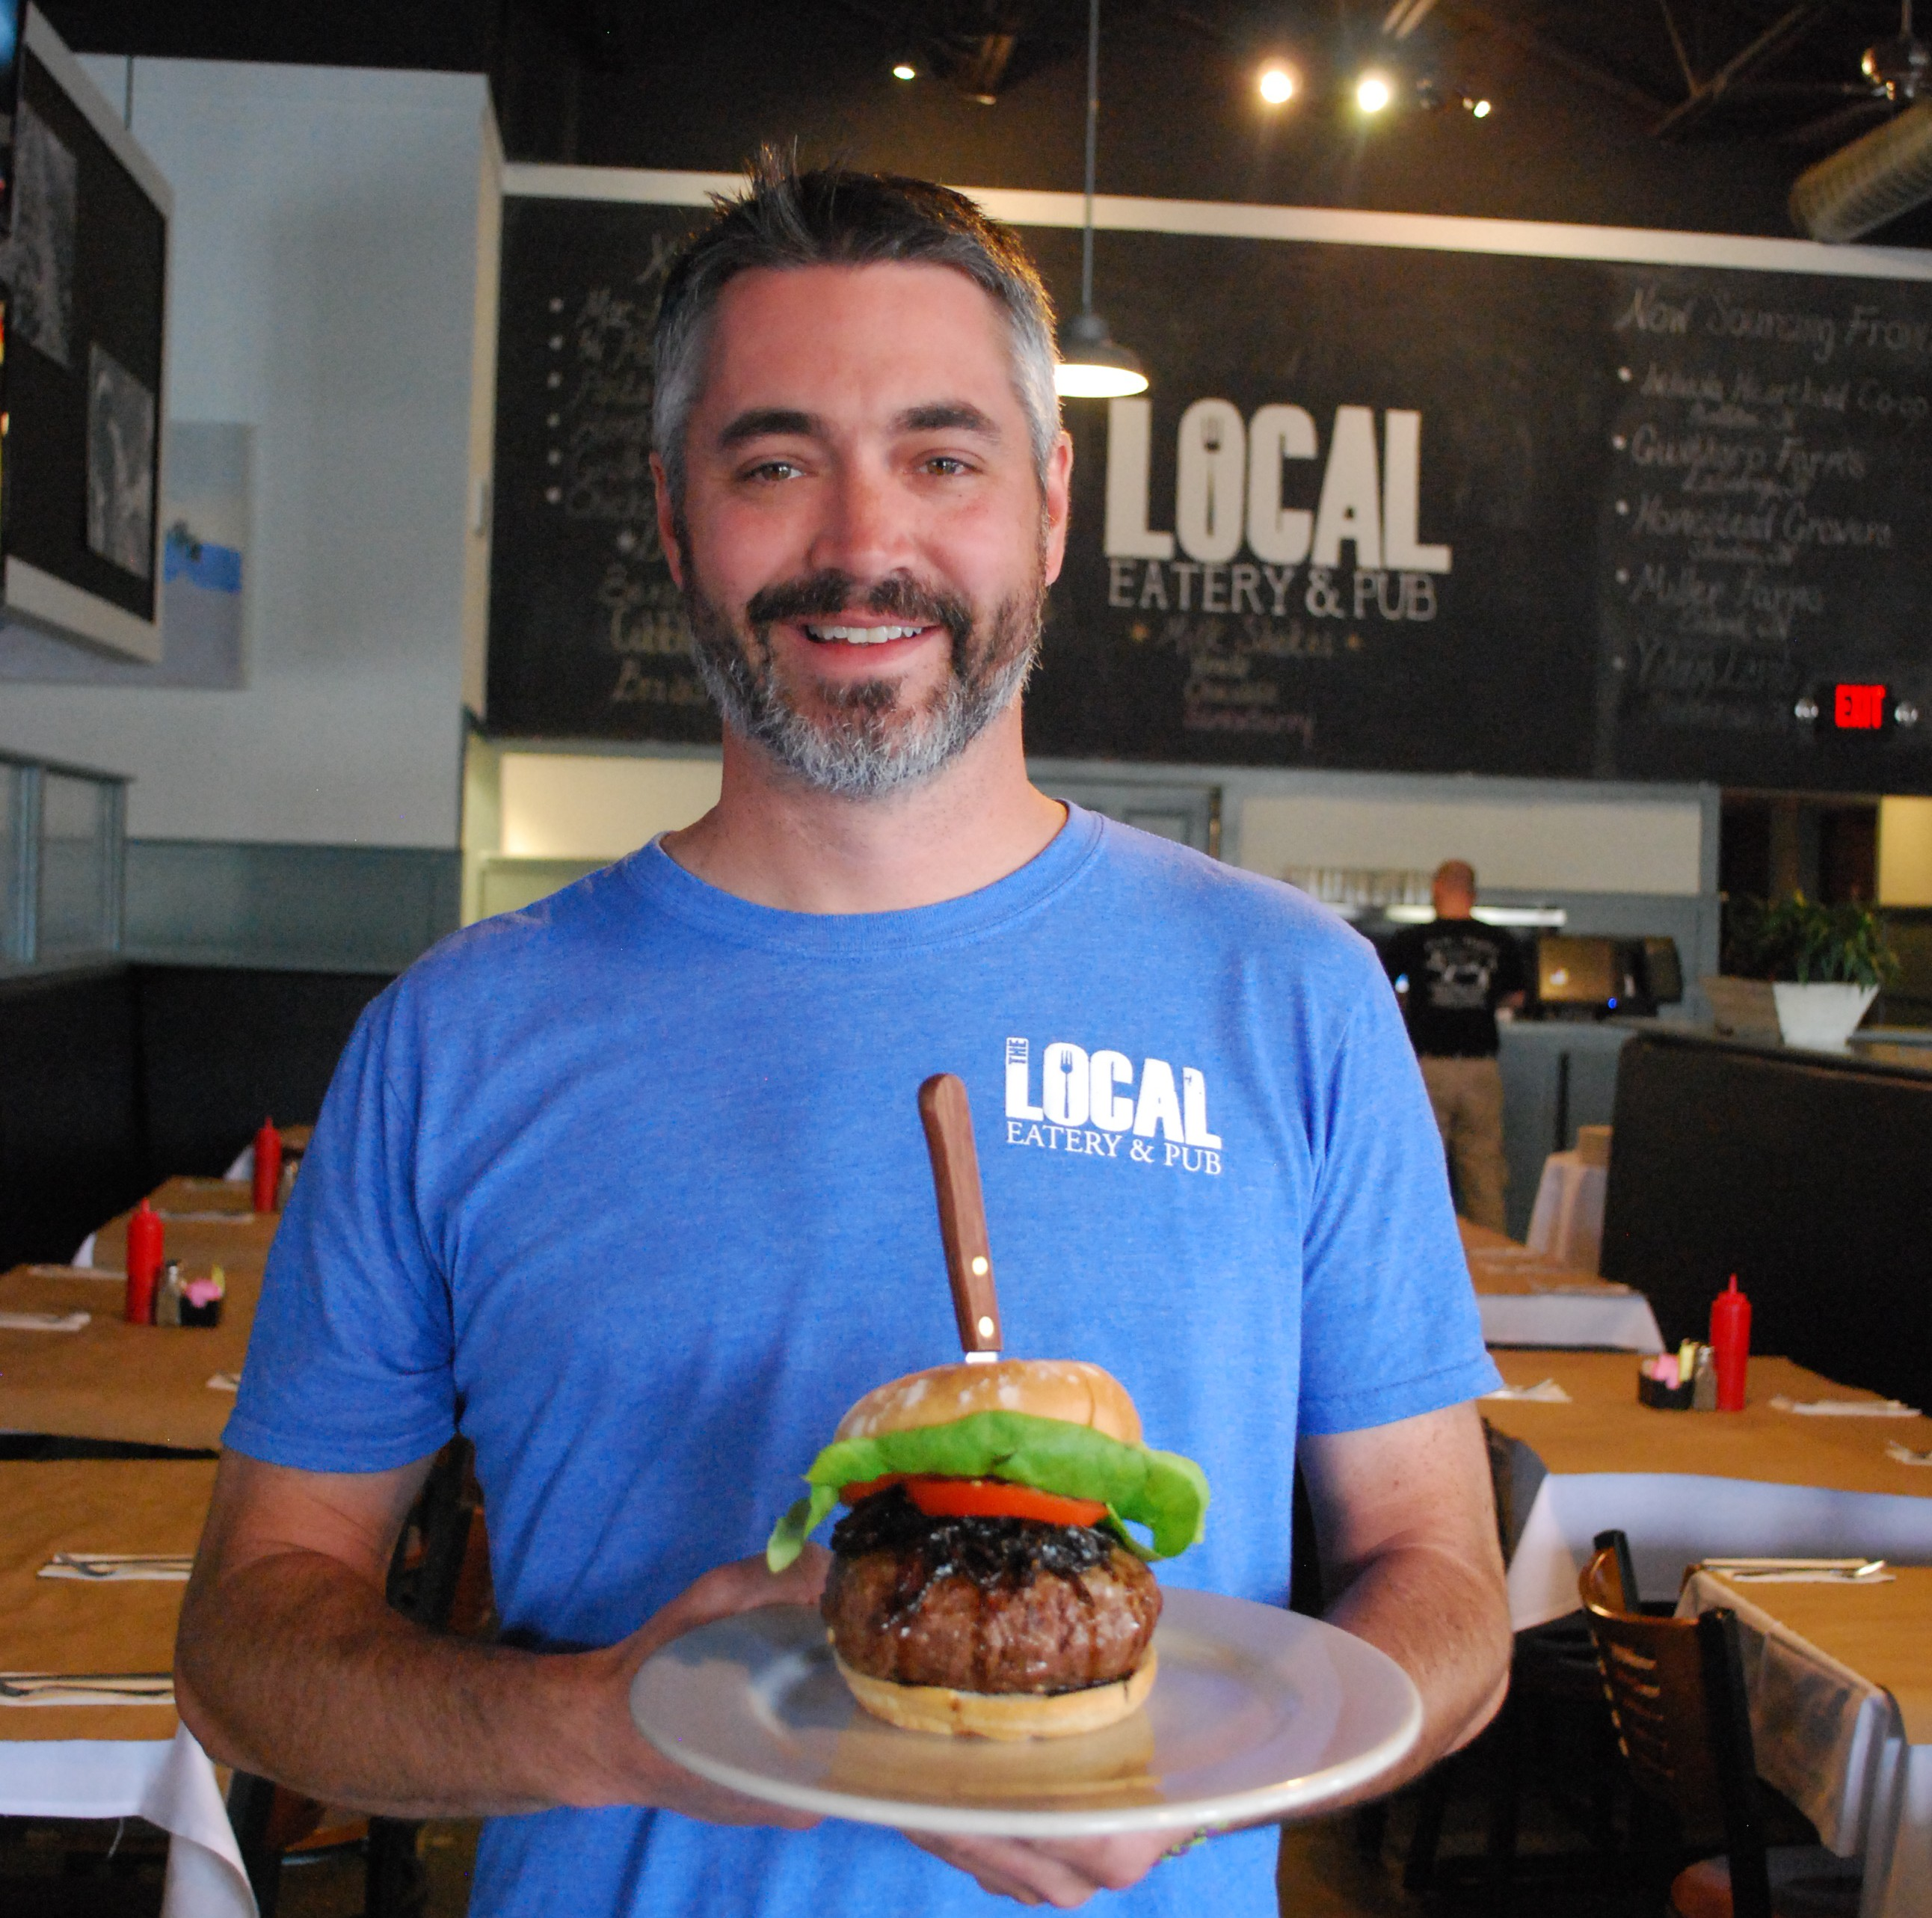 Local Eatery and Pub Executive Chef Craig Baker displays the entry that is sending him to the World Burger Championship in Las Vegas. (Photo by Robert Herrington)